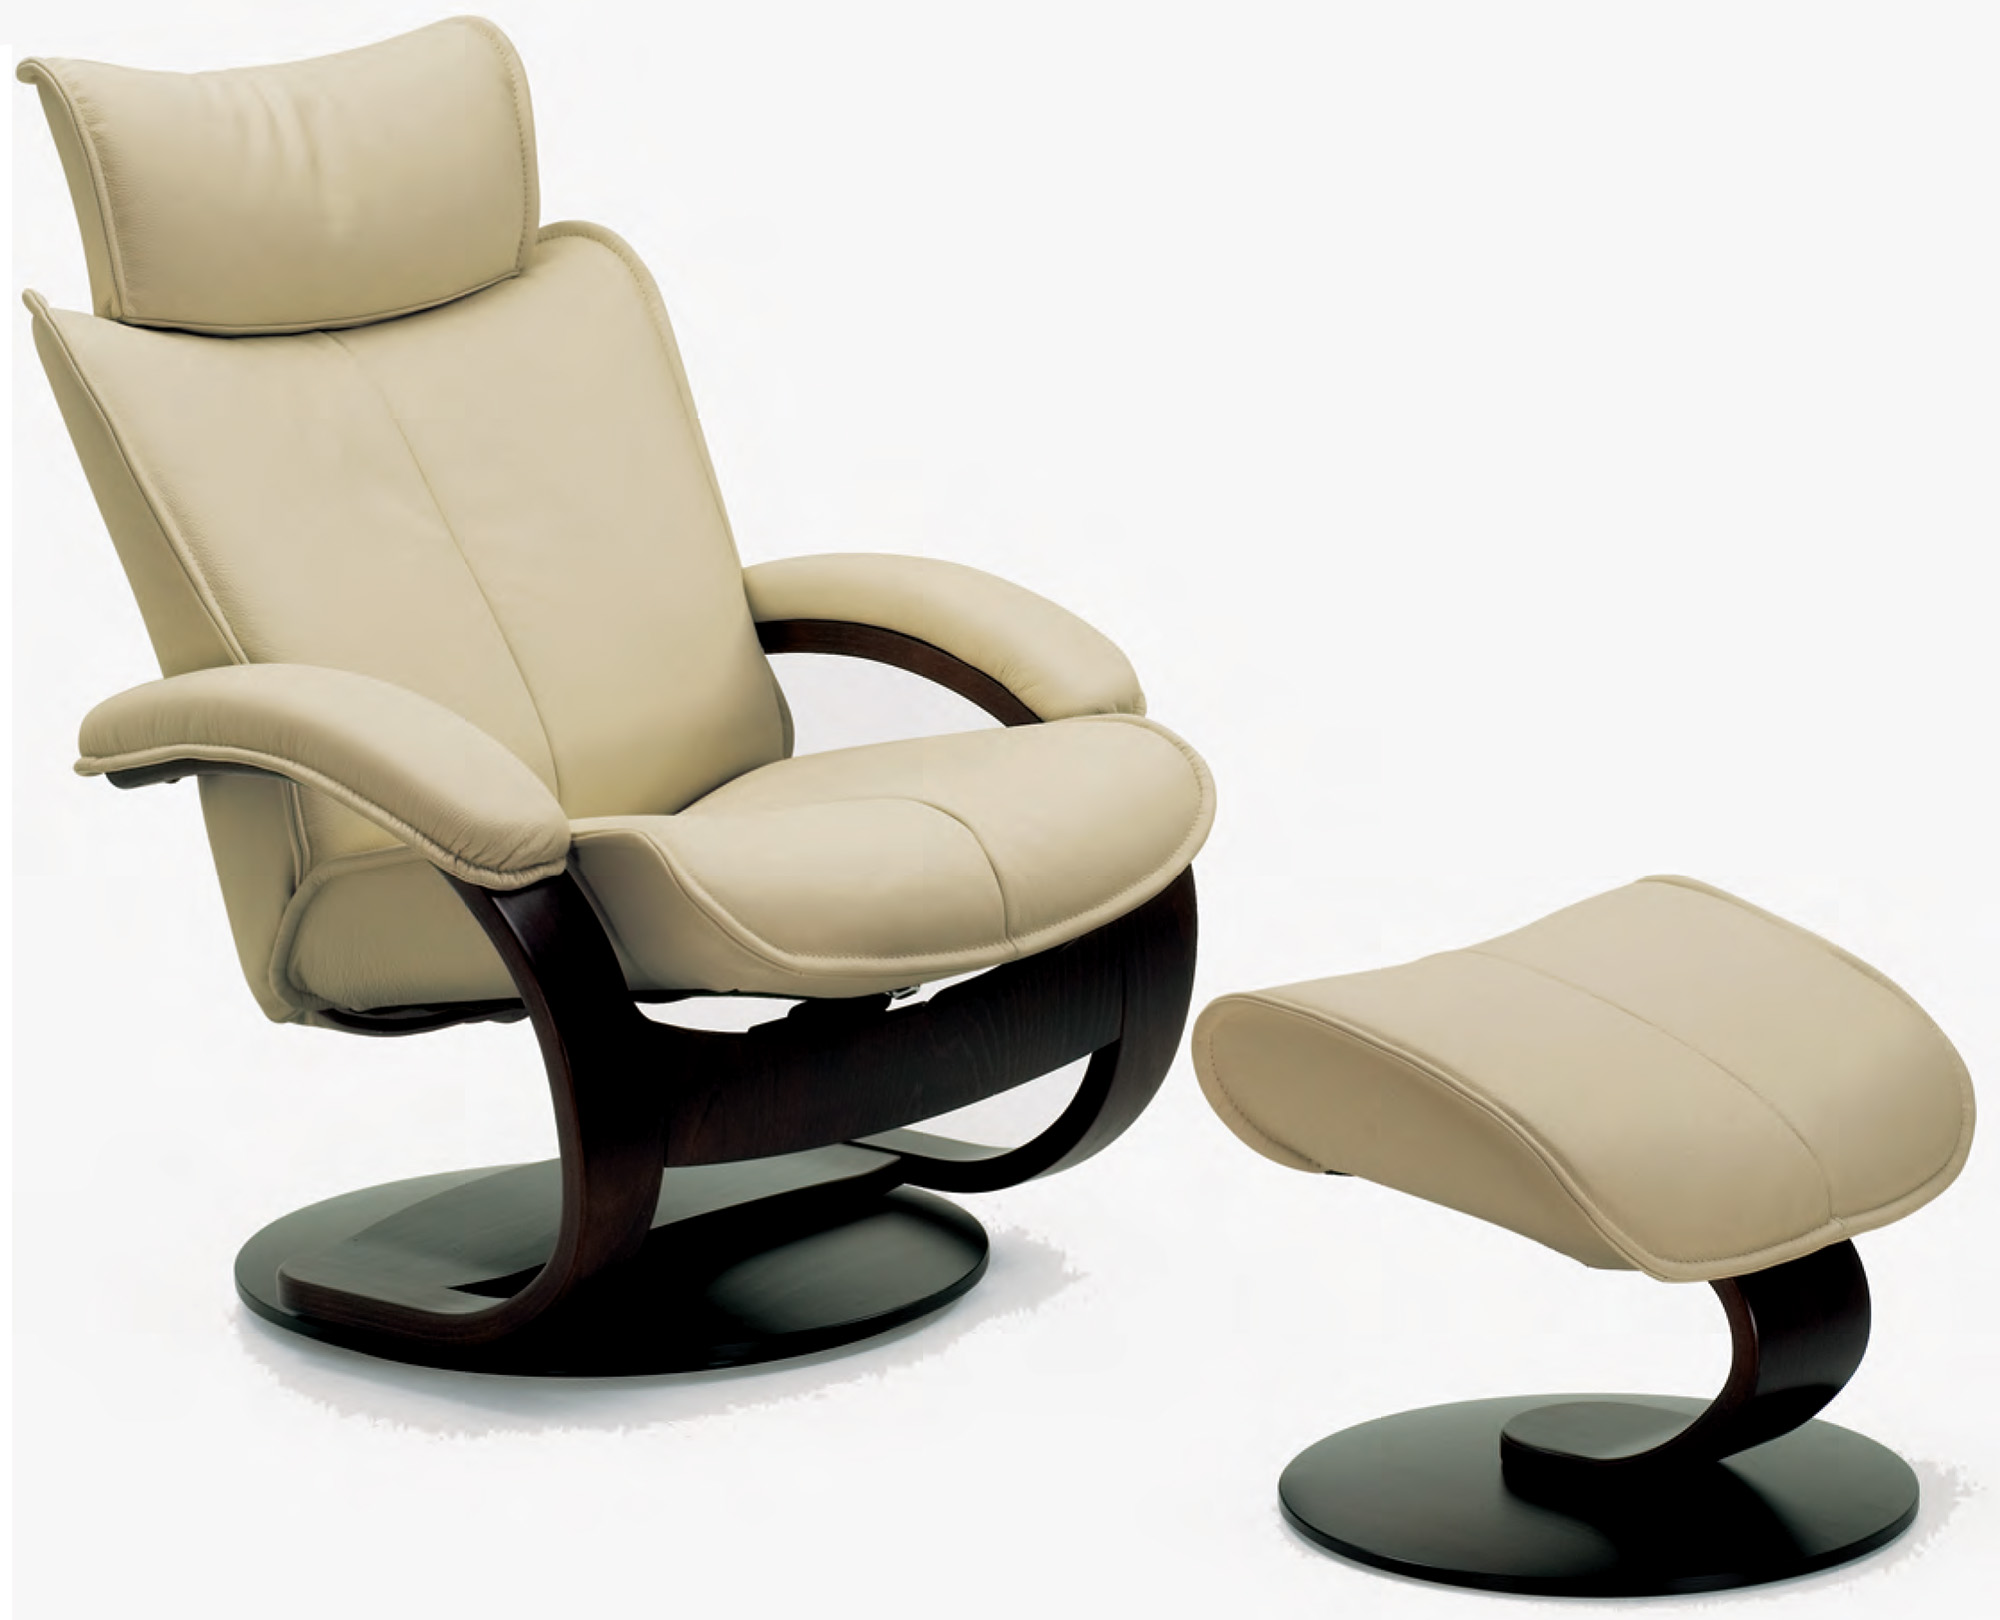 Fjords Ona Ergonomic Leather Recliner Chair and Ottoman Scandinavian Lounger & Fjords Ona Ergonomic Leather Recliner Chair + Ottoman Scandinavian ... islam-shia.org